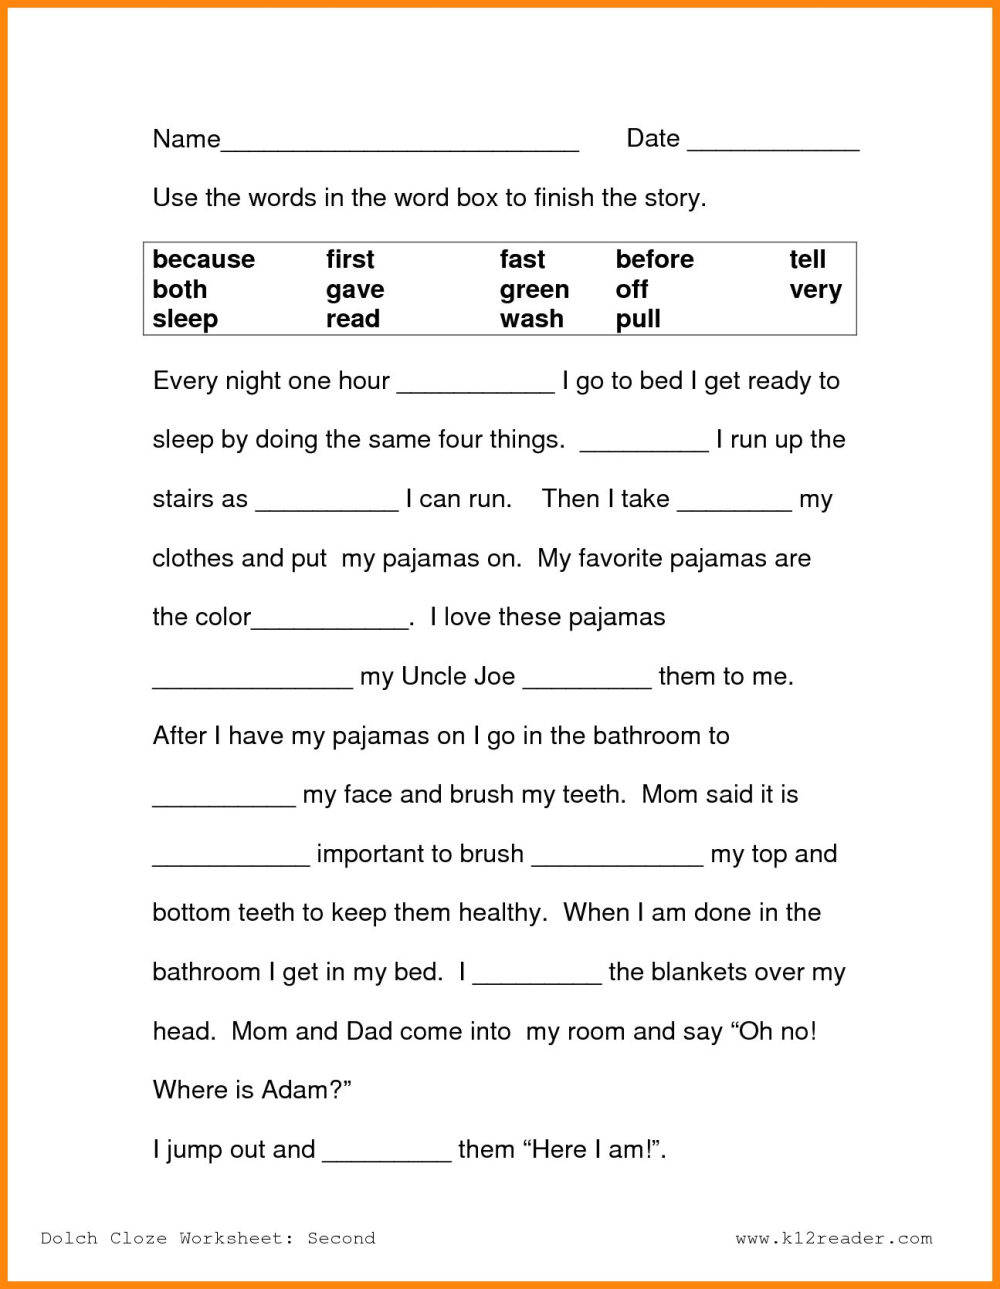 medium resolution of 4th Grade Vocabulary Worksheets Printable   Printable Worksheets and  Activities for Teachers